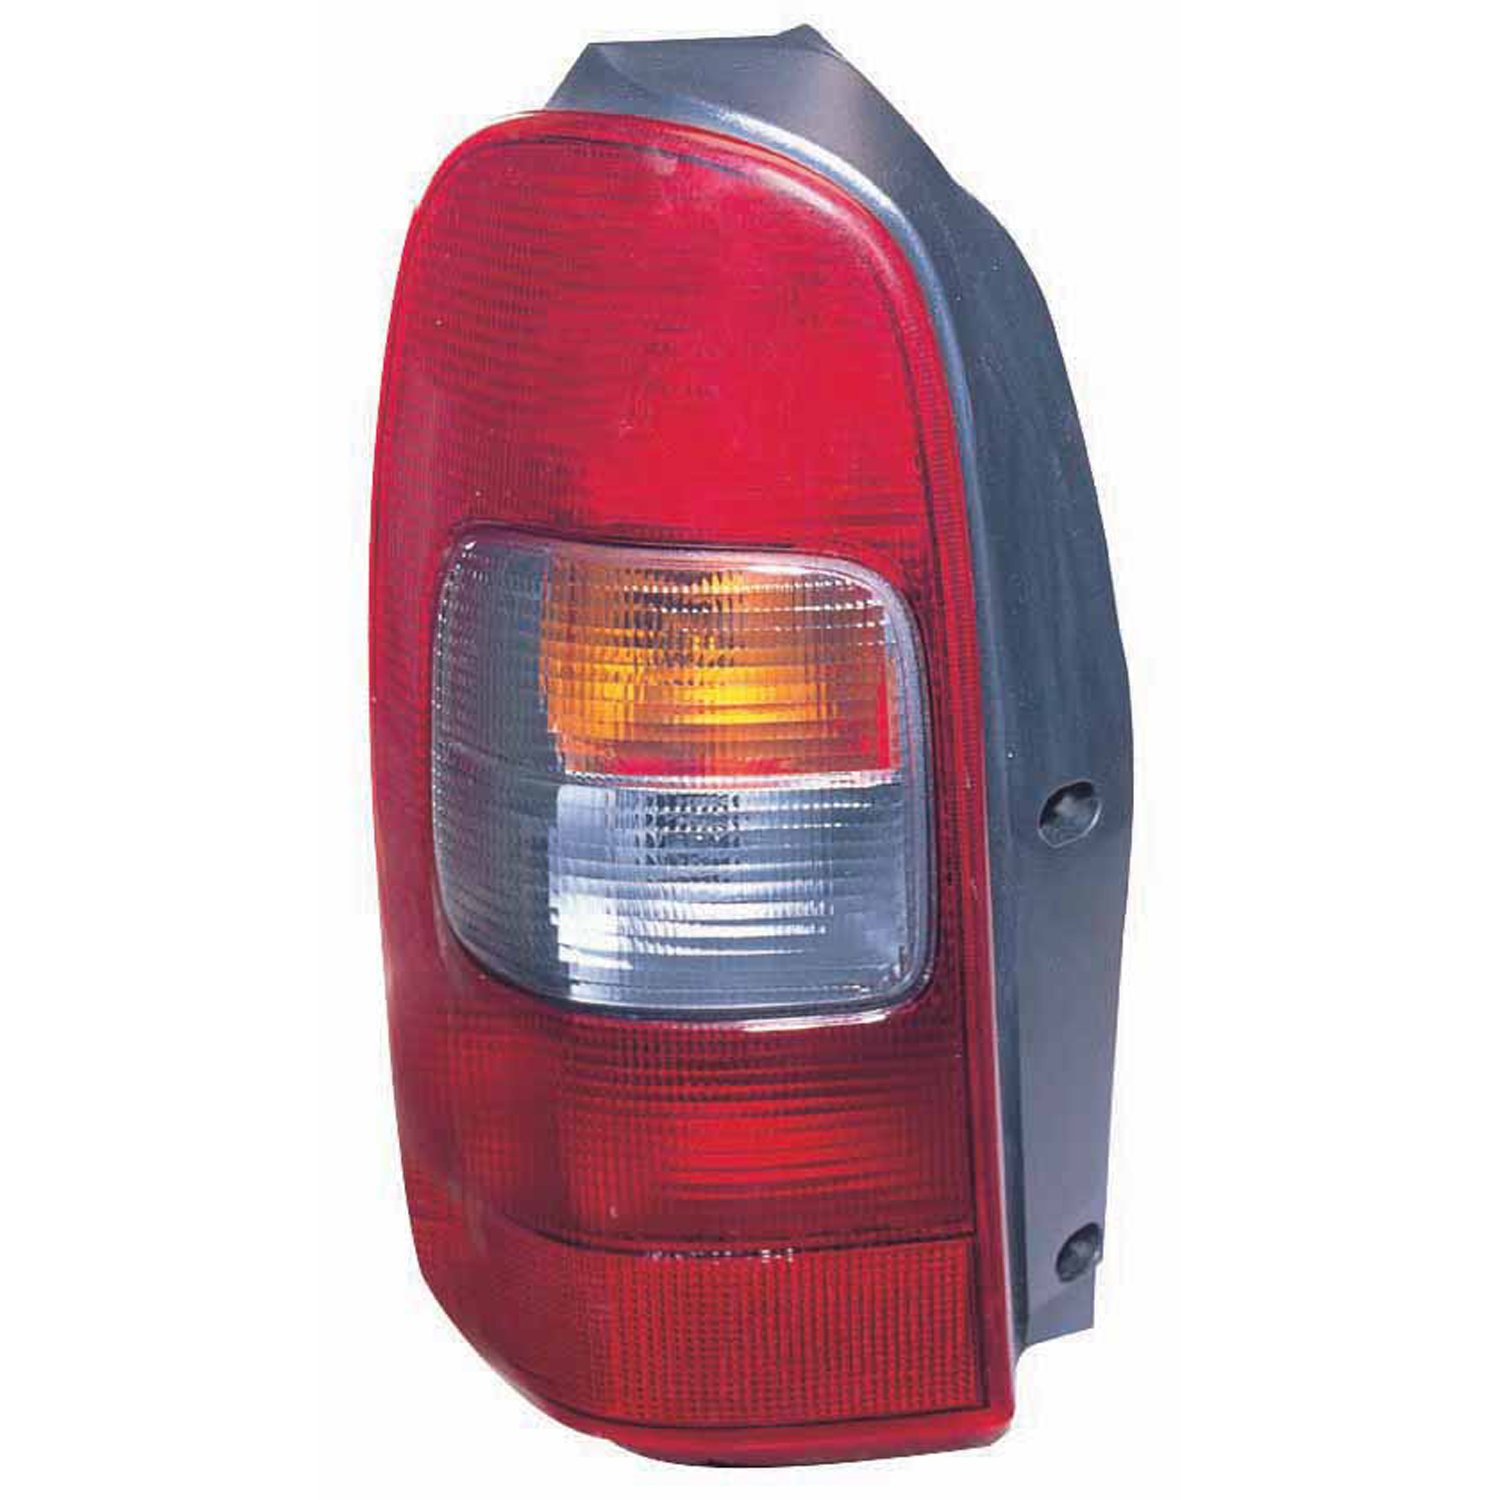 OE Replacement Tail Light PONTIAC TRANSPORT 1997-2005 Multiple Manufacturers GM2801134C Partslink GM2801134